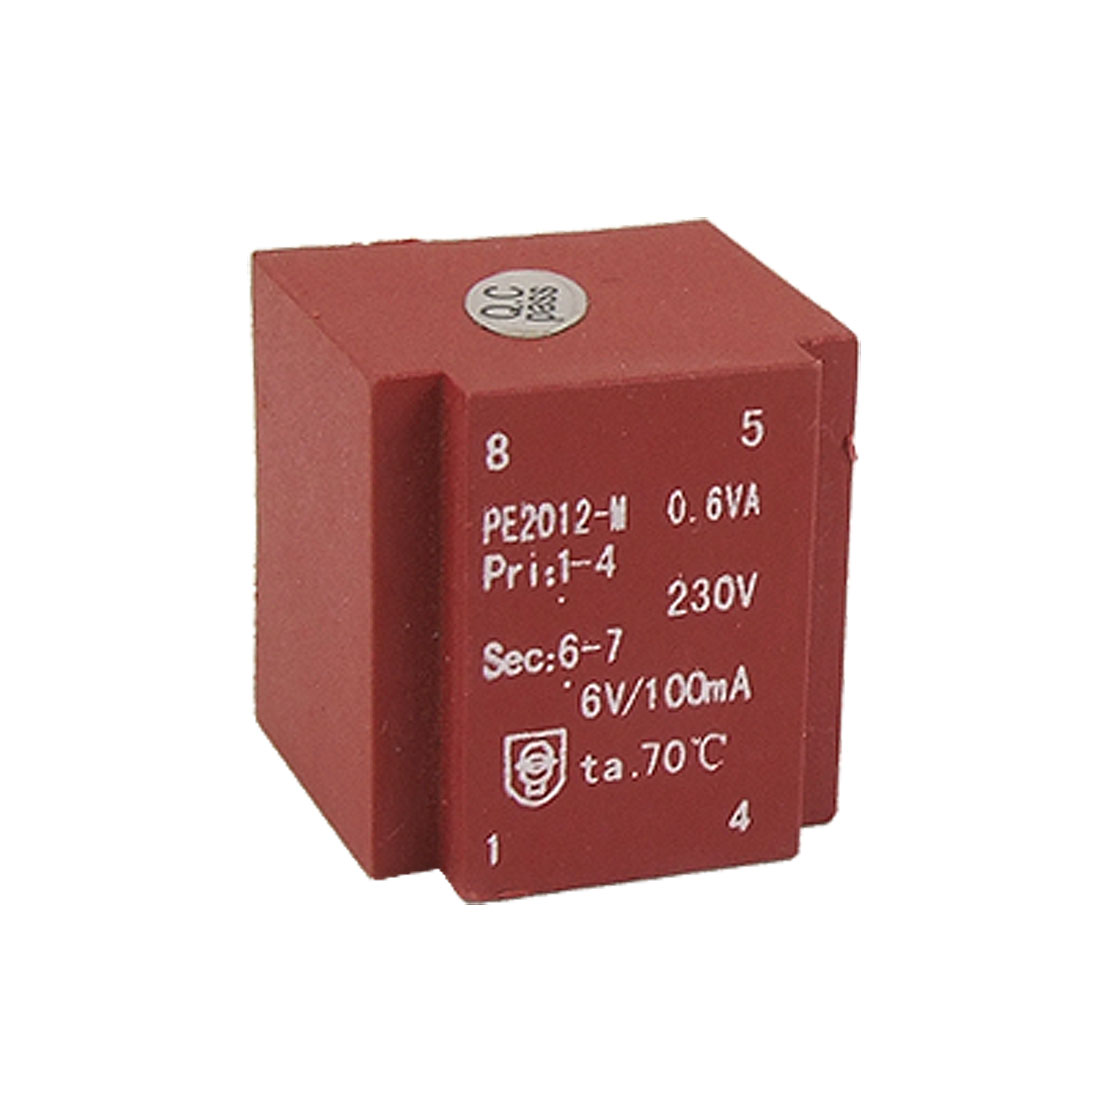 Single-way Output Encapsulated Transformer PE2012-M Red